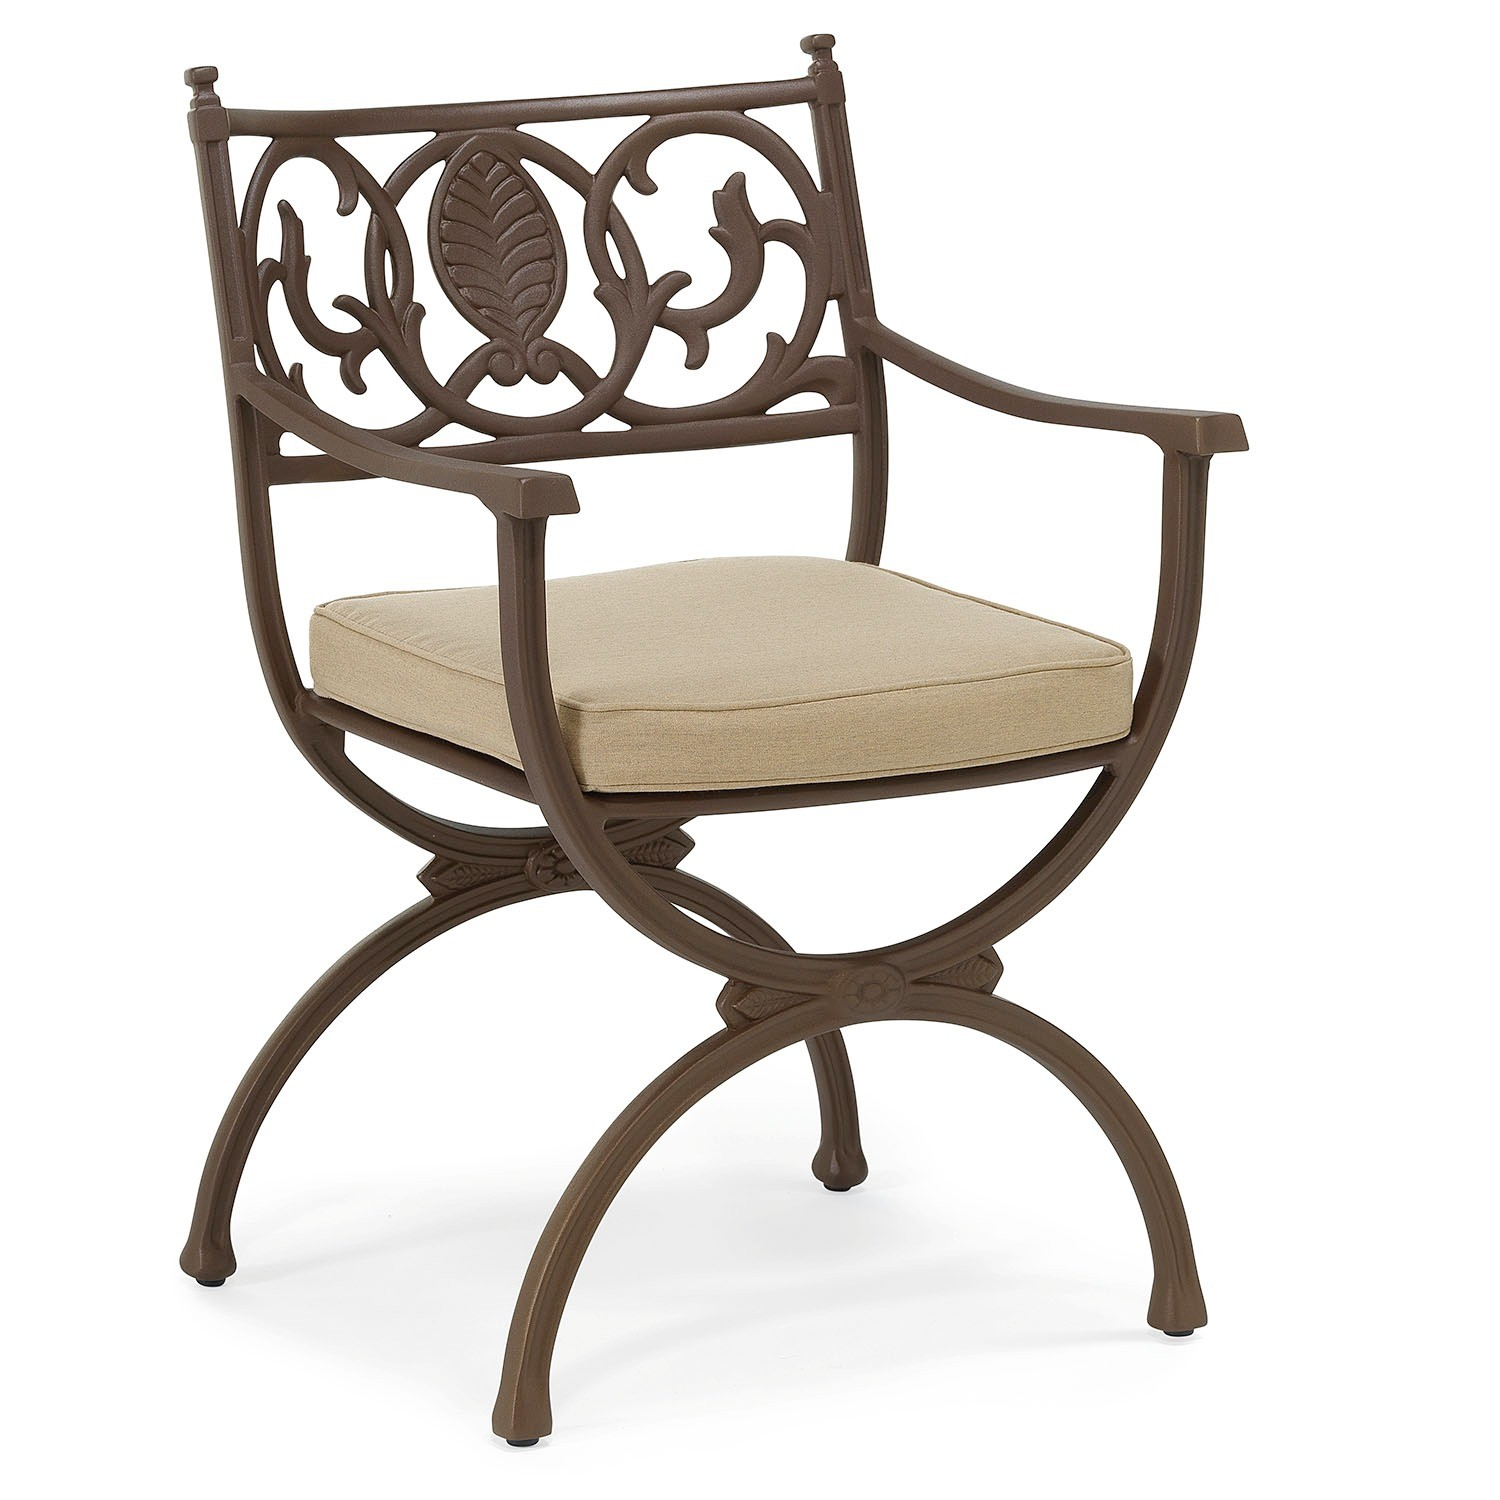 Artemis metal Outdoor dining arm chair with standard fabric seat cushion